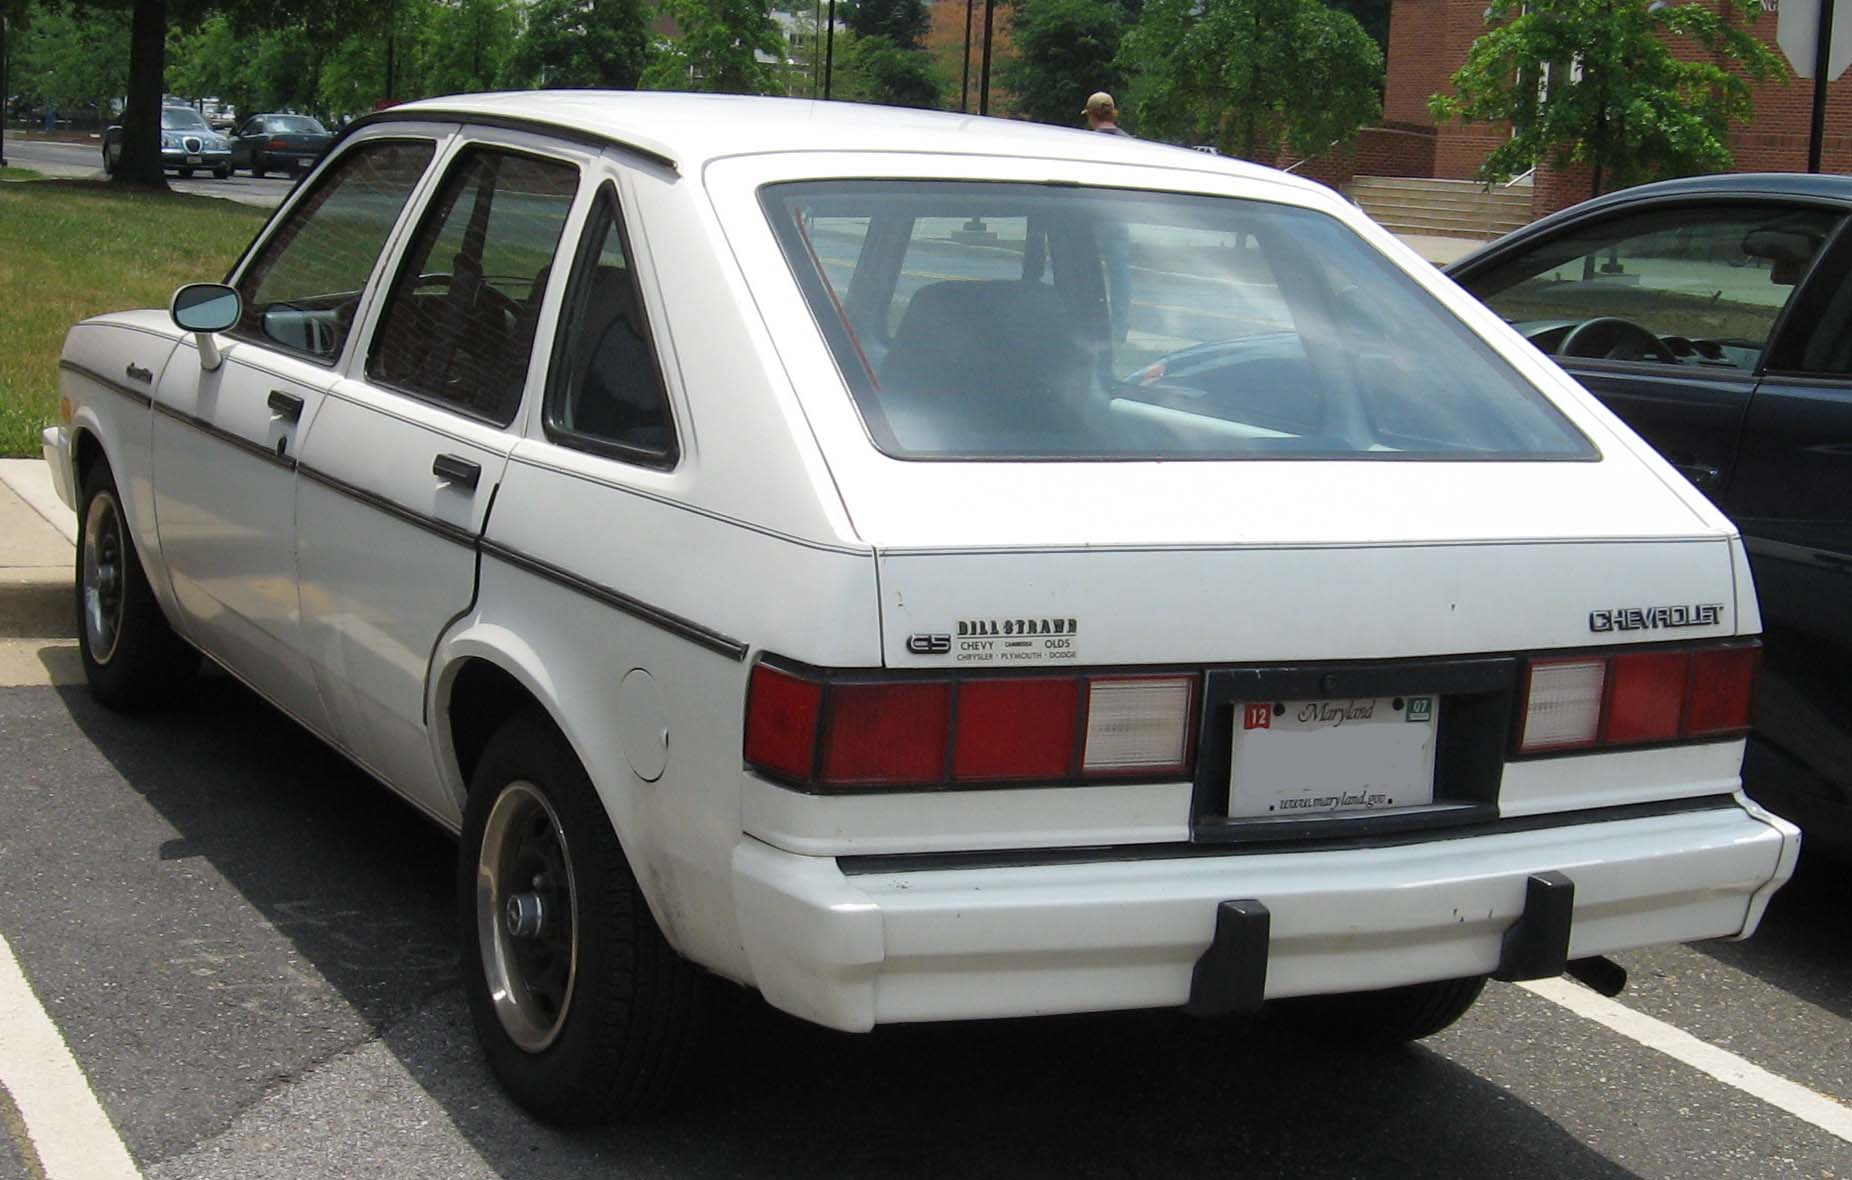 File:83-85 Chevrolet Chevette 2.jpg - Wikimedia Commons